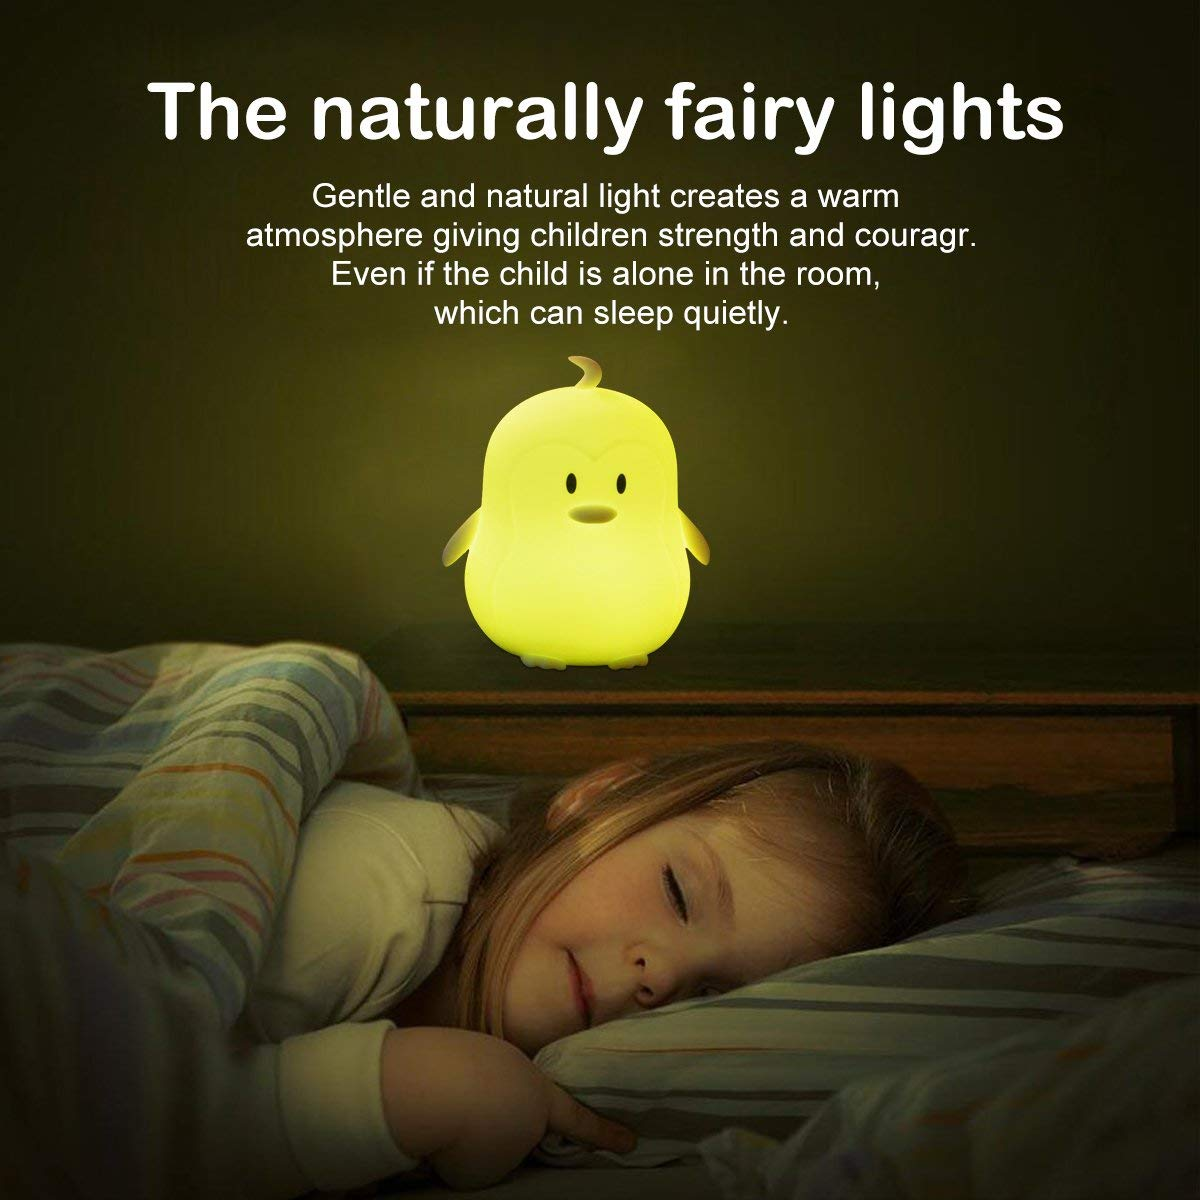 Penguin Night Light for Kids, Cute Baby Nightlights,Rechargeable Nursery Lamp with Touch Sensor and Remote Control,Color Changing Light for Infant or Toddler,Birthday Gift for Baby Girls/Boys